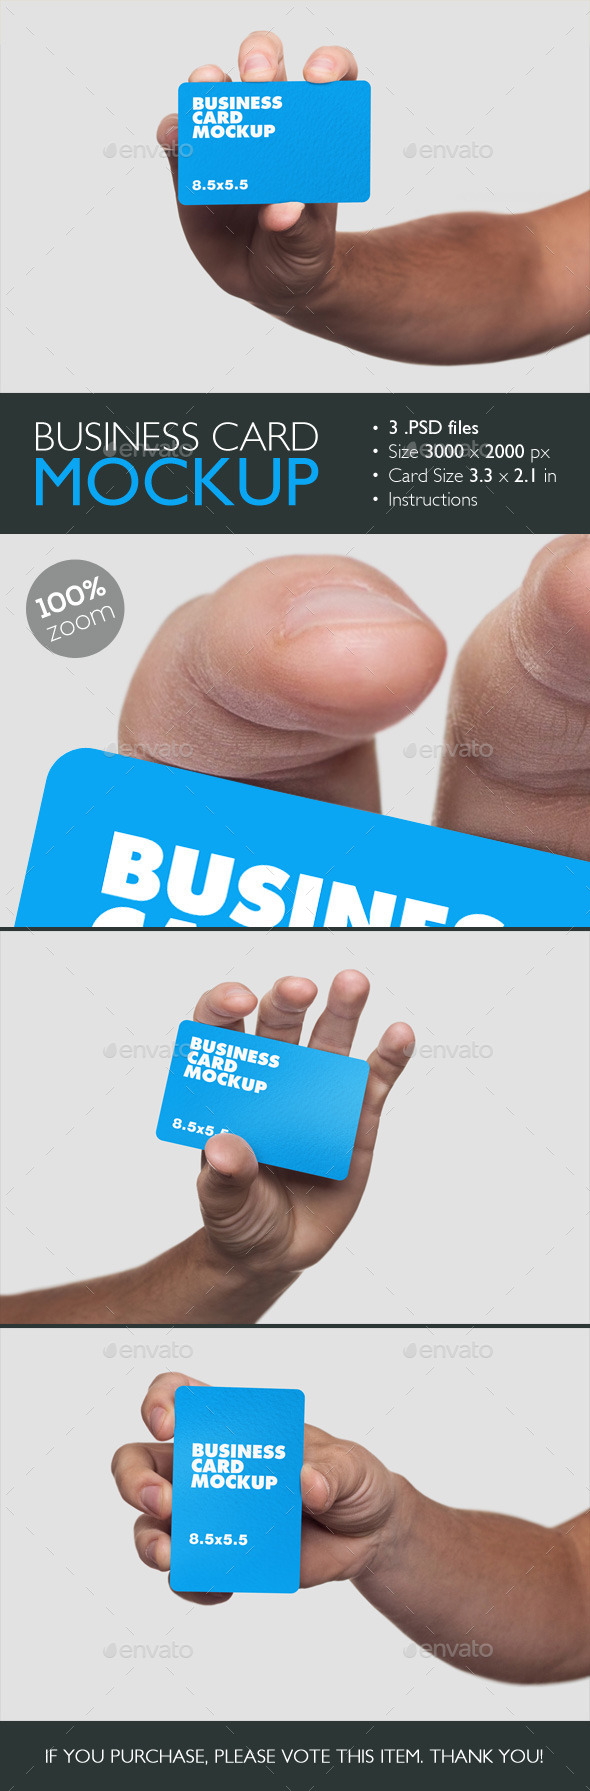 GraphicRiver Business Card Mockup 10342091